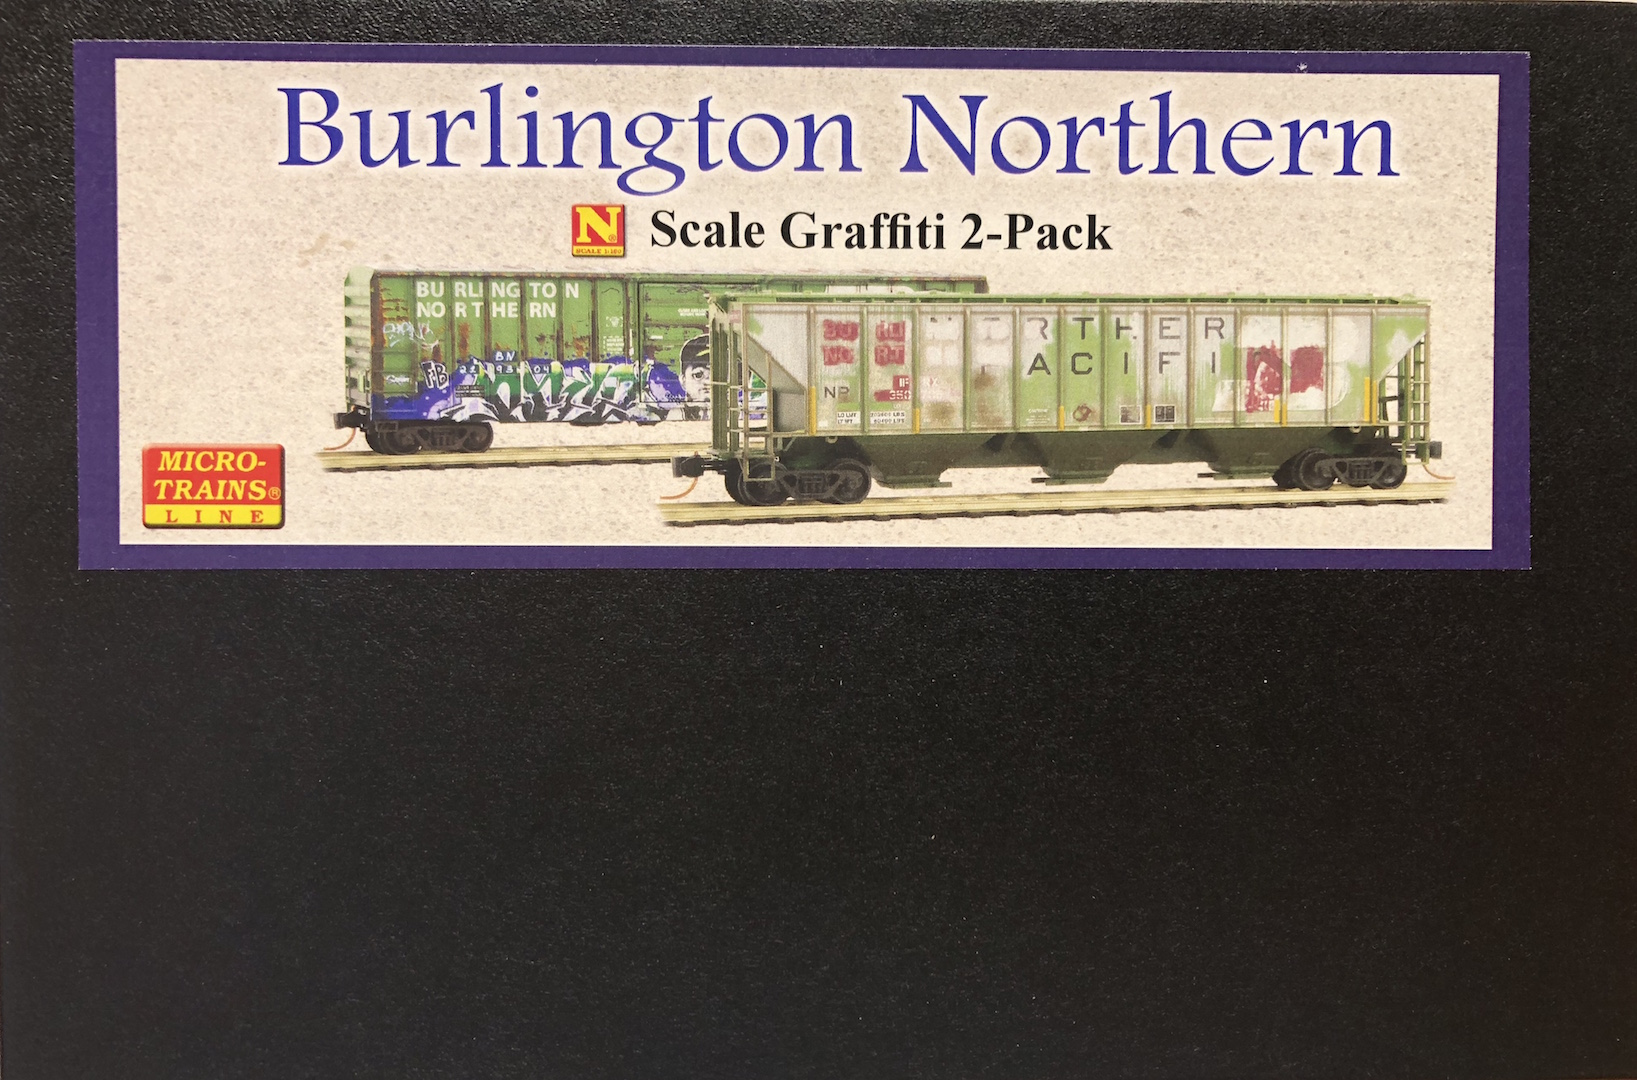 N Scale - Micro-Trains - 993 05 440 - Mixed Freight Consist, North America, Transition Era - Burlington Northern